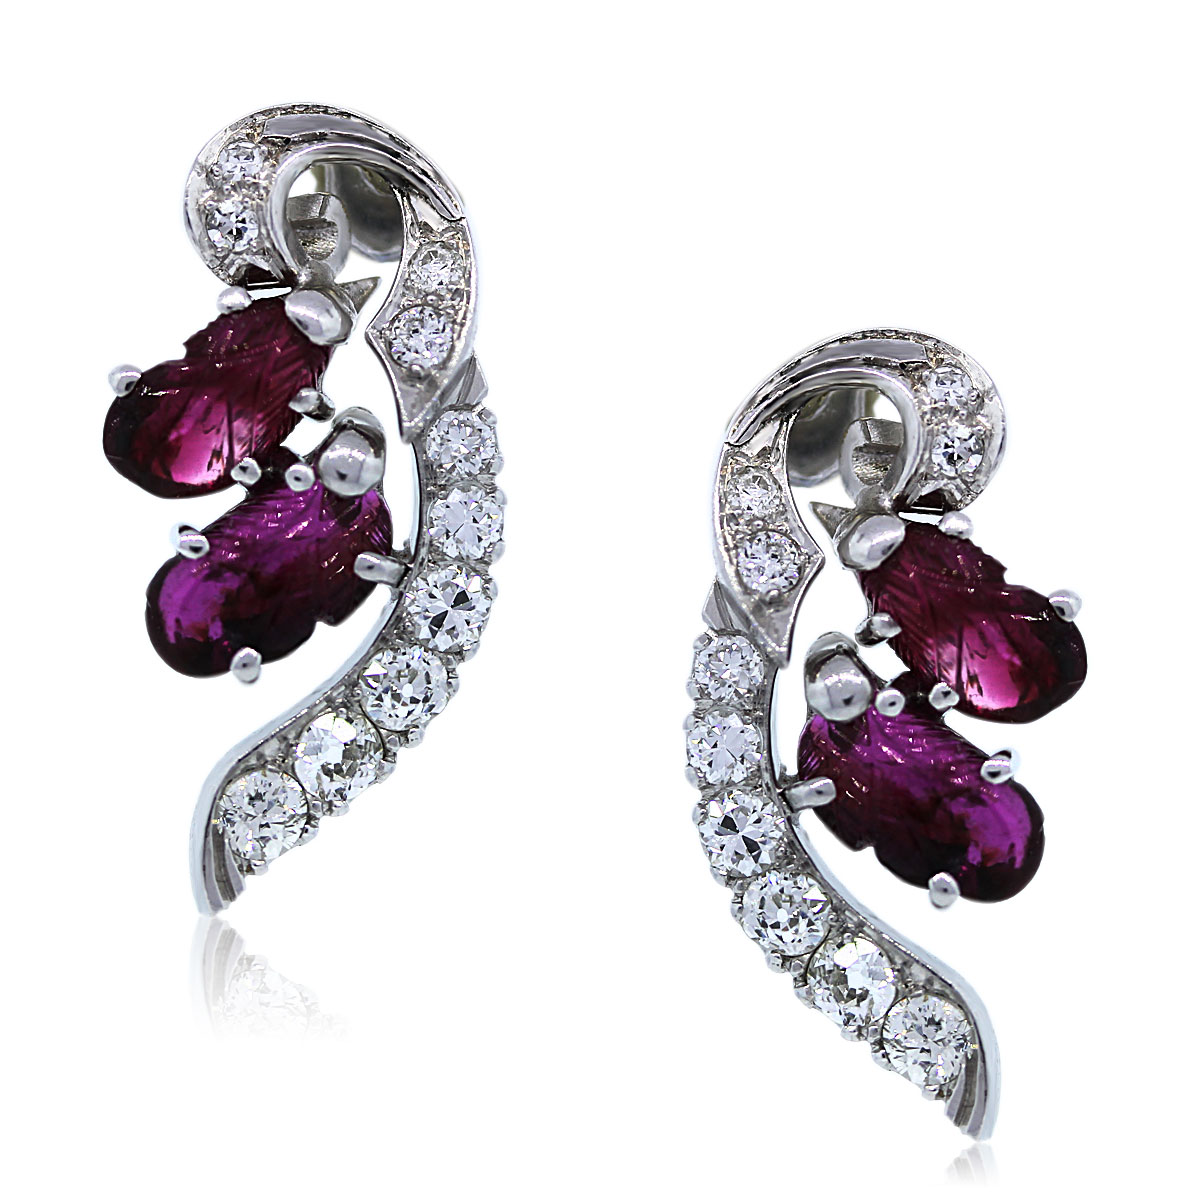 Platinum Vintage Earrings